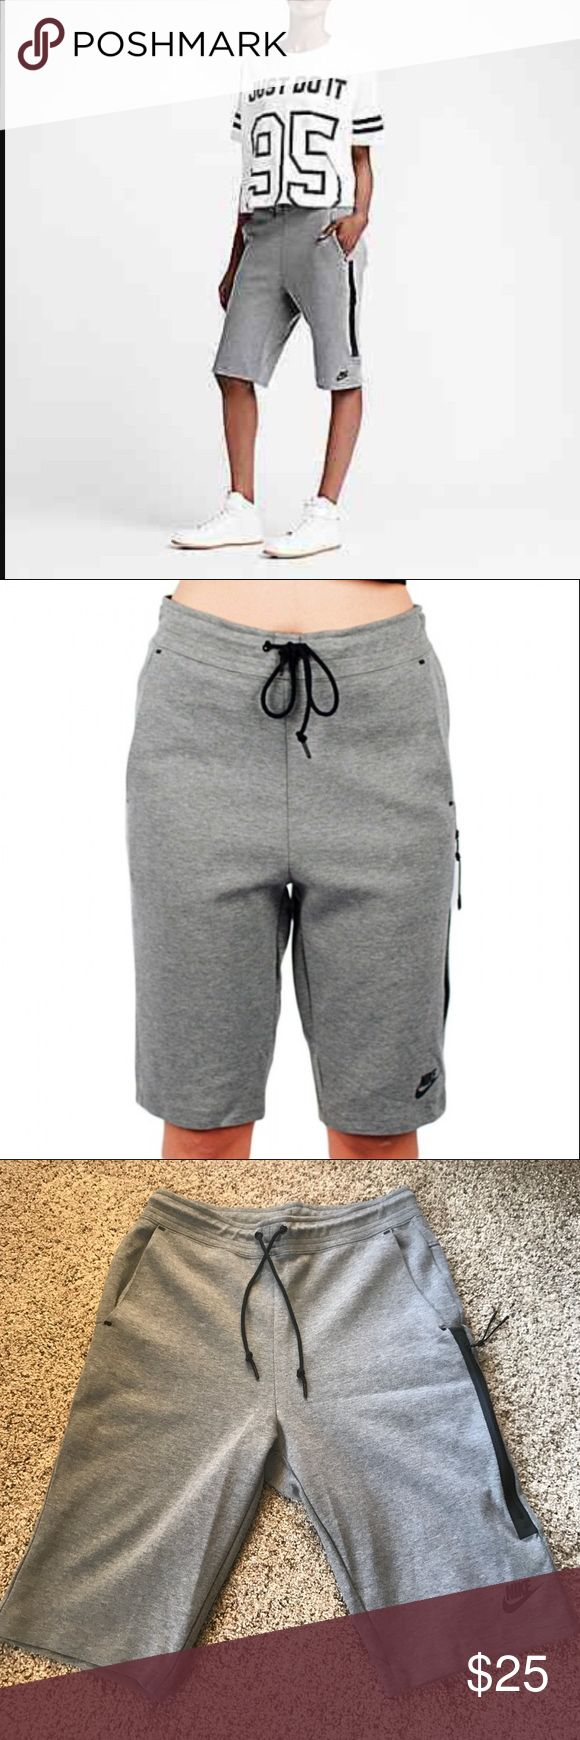 Nike women tech fleece short M gray NWOT PREMIUM COMFORT The Nike Tech Fleece Women's Shorts are made with a soft cotton blend and an oversized, bonded zip pocket for a comfortable fit and convenient storage. BENEFITS Front bonded zip pocket and side pockets Inseam gusset provides wide range of motion PRODUCT DETAILS Elastic waist with exterior drawcord Fabric: Body: 69% cotton/31% polyester. Pocket bags: 100% cotton.  Machine wash Imported  M Nike Shorts